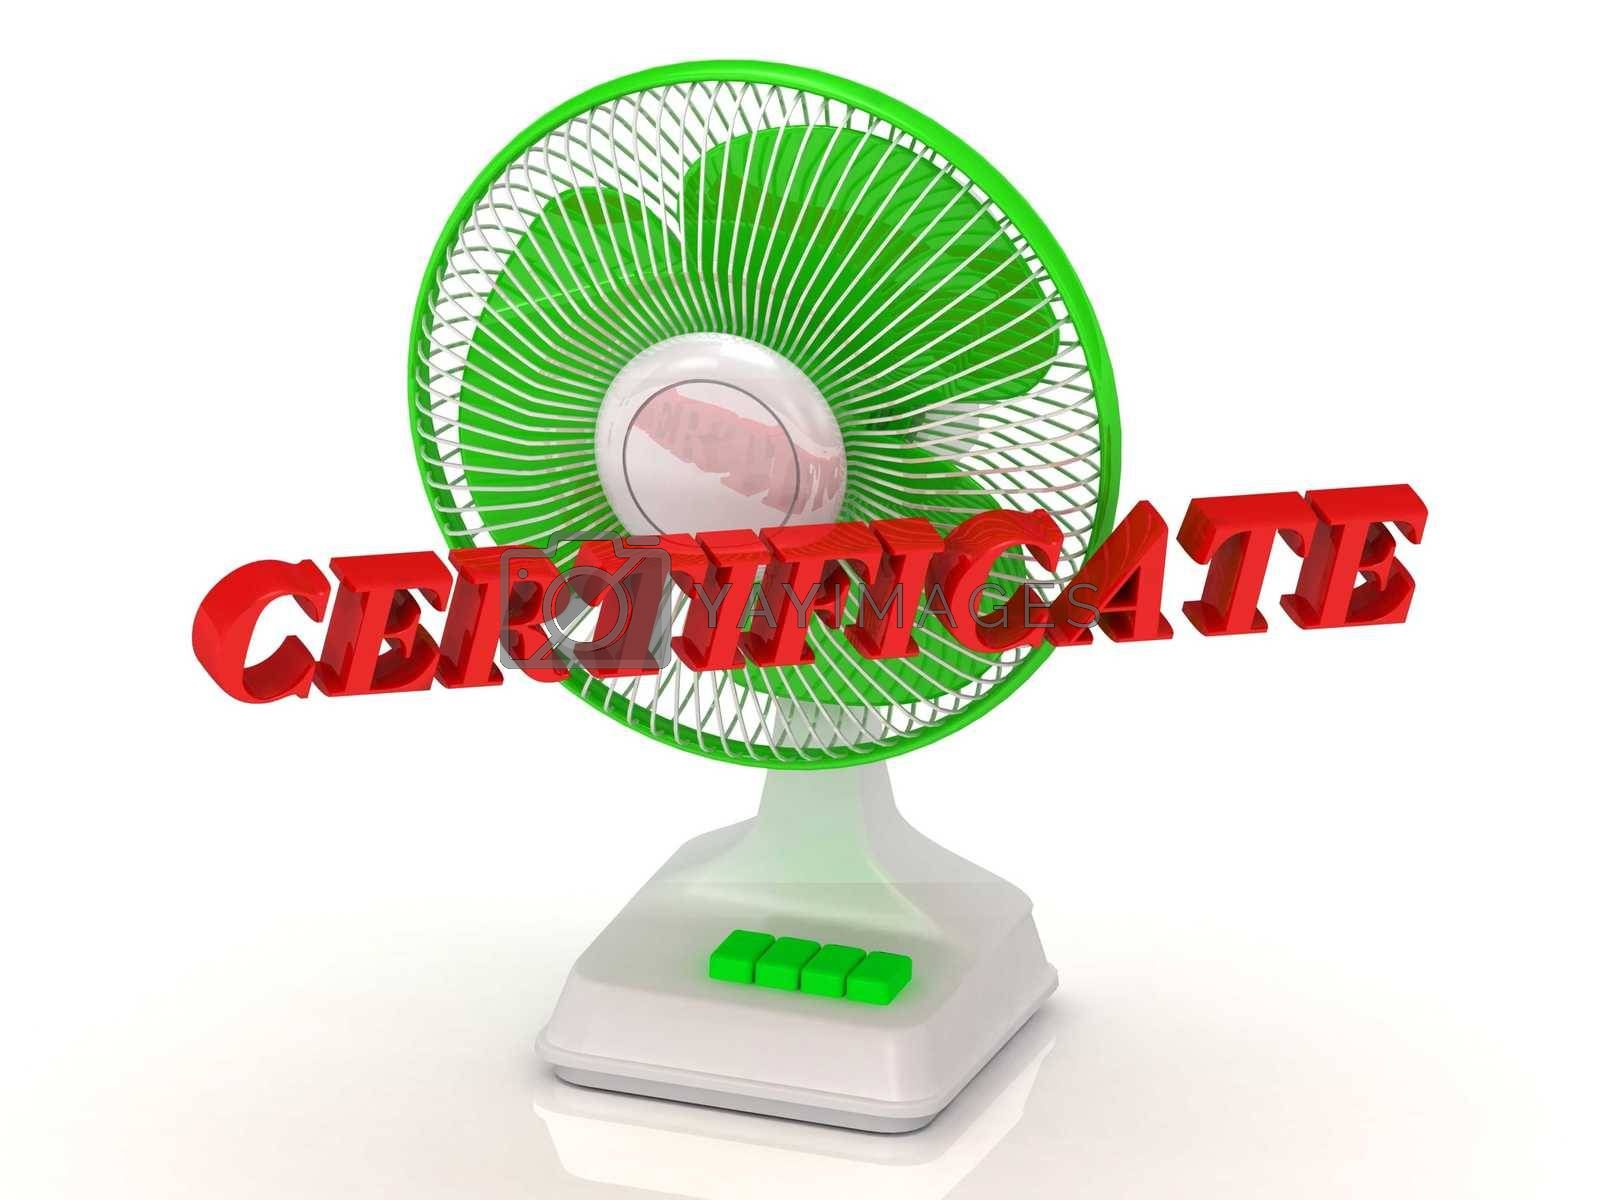 CERTIFICATE- Green Fan propeller and bright color letters on a white background